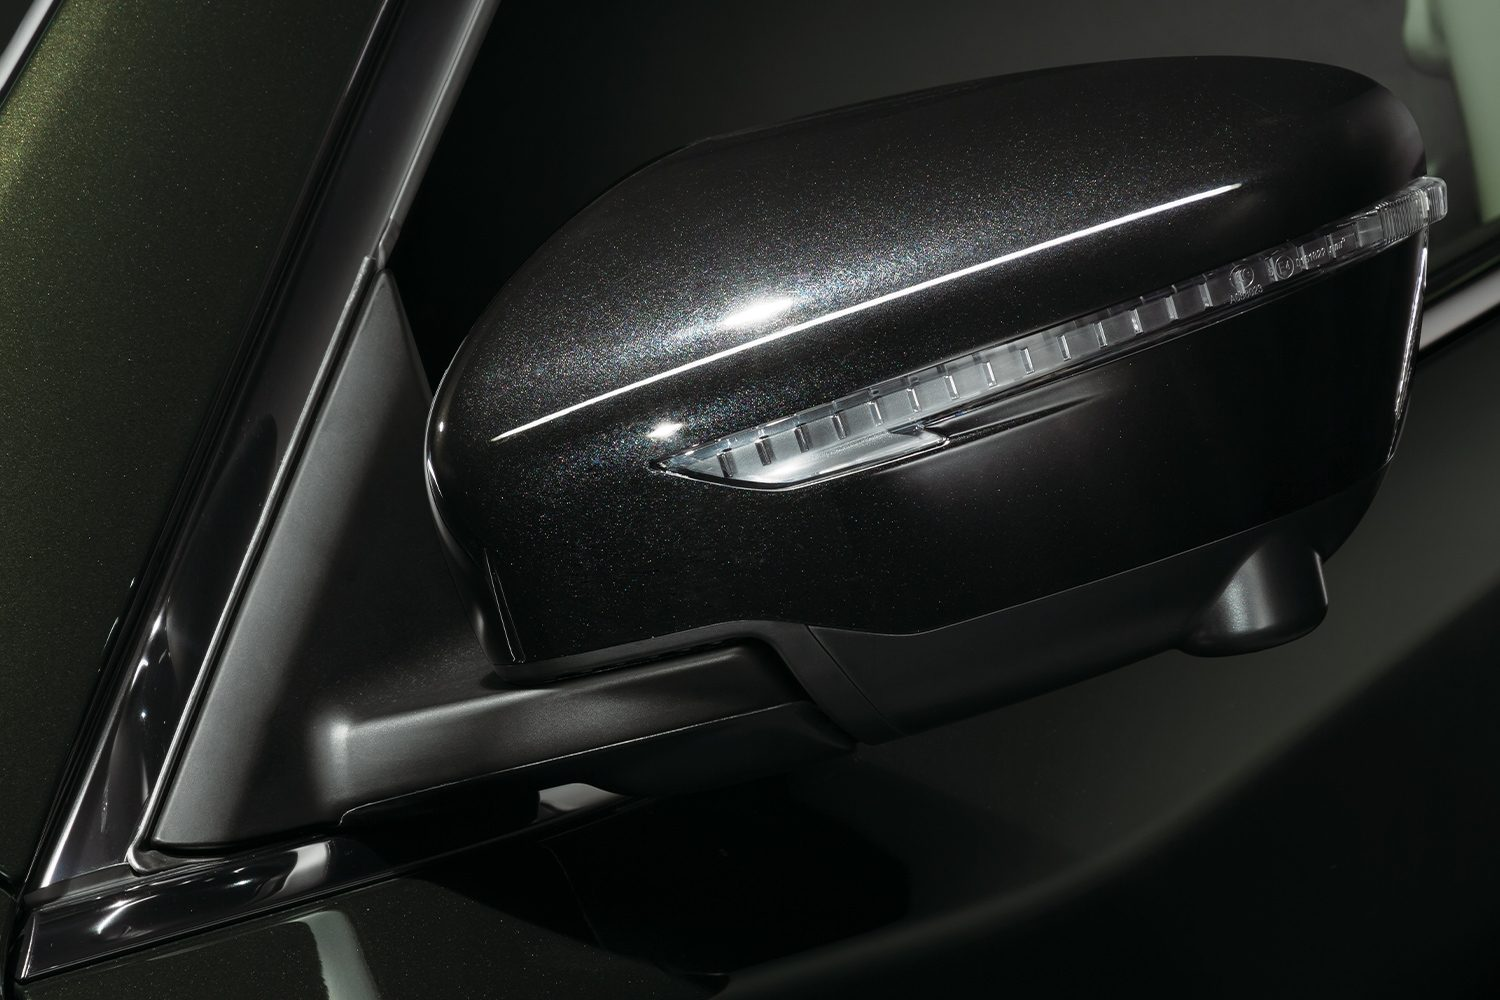 THE NEW 2020 NISSAN X-TREMER Black door mirror cover